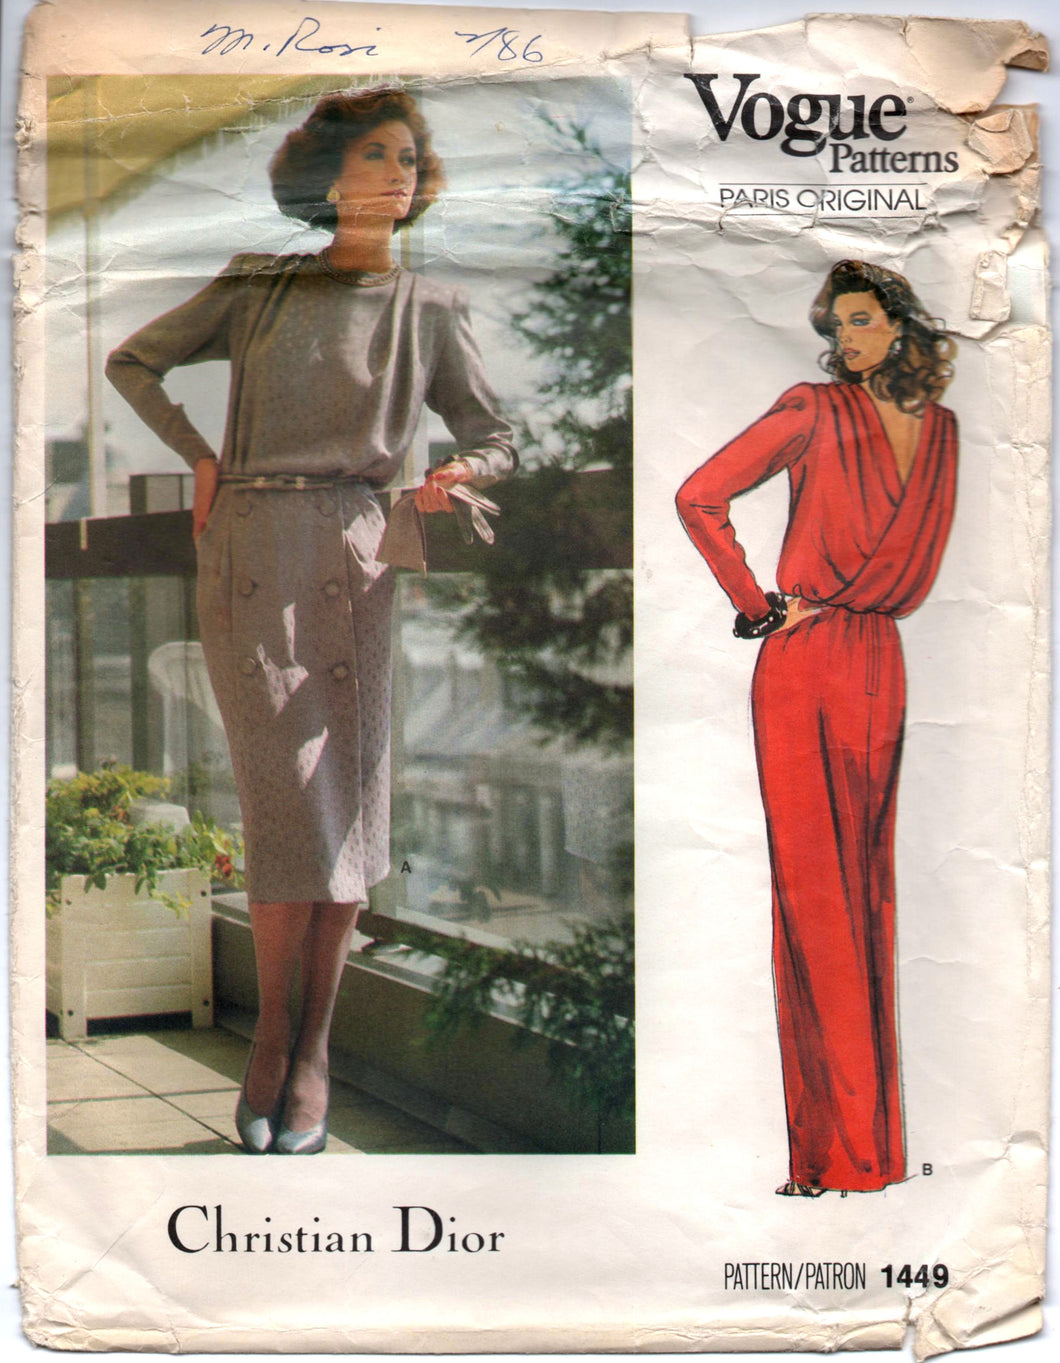 1980's Vogue Paris Original Maxi and Cocktail Dress Pattern with Cross back and Long Sleeves -Christian DIOR - Bust 32.5